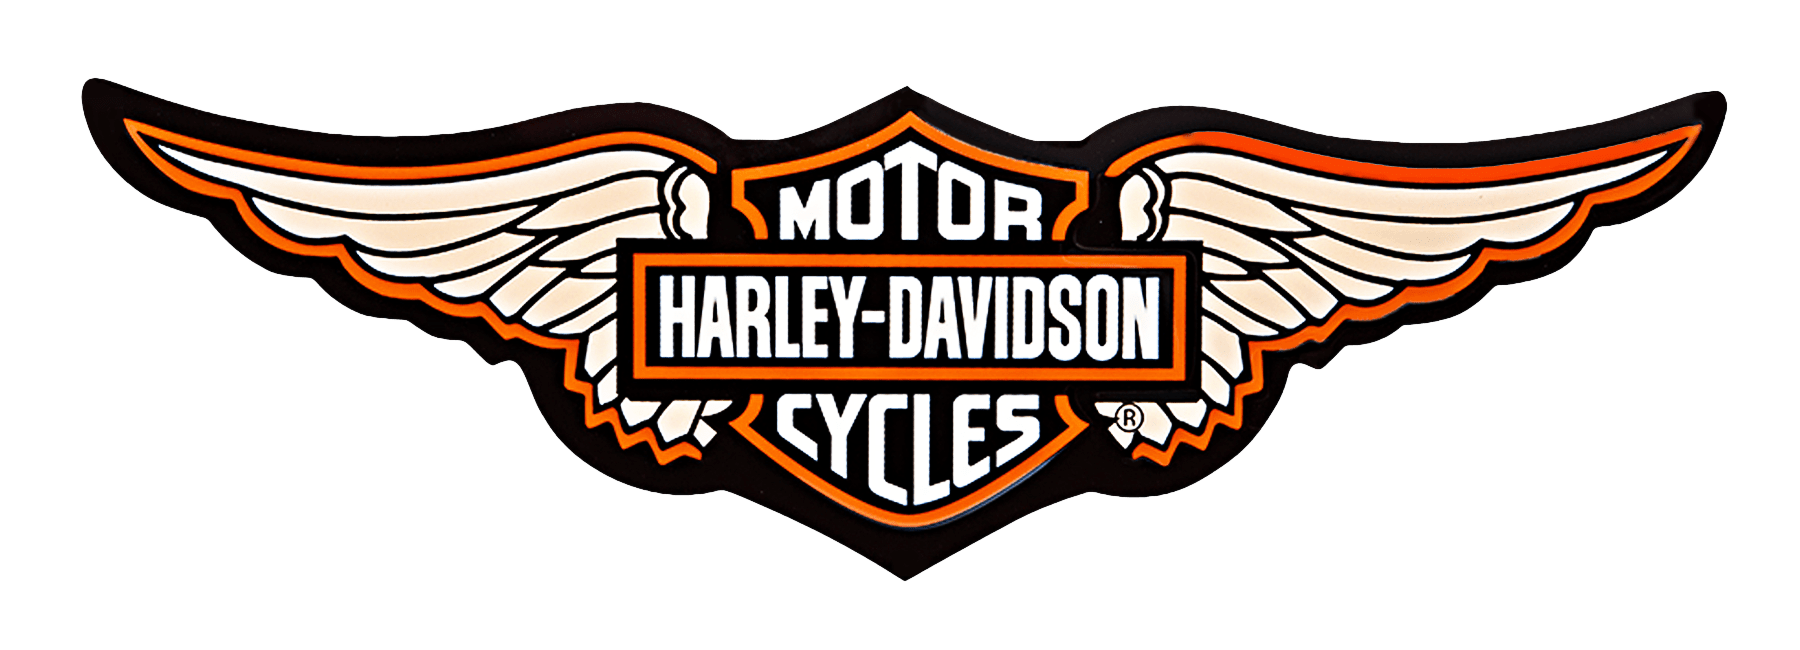 Harleydavidson Logo  Motorcycle Brands. Cover Letter Medical Laboratory Technologist. Secretary Resume Format. Character Sketch Template For Writers. Portfolio For Job Application Template. Sample Letter Of Recommendation For Scholarship Template. Construction Scope Of Work Templates. Microsoft Timetable Template Photo. Quotation Marks And Commas Template